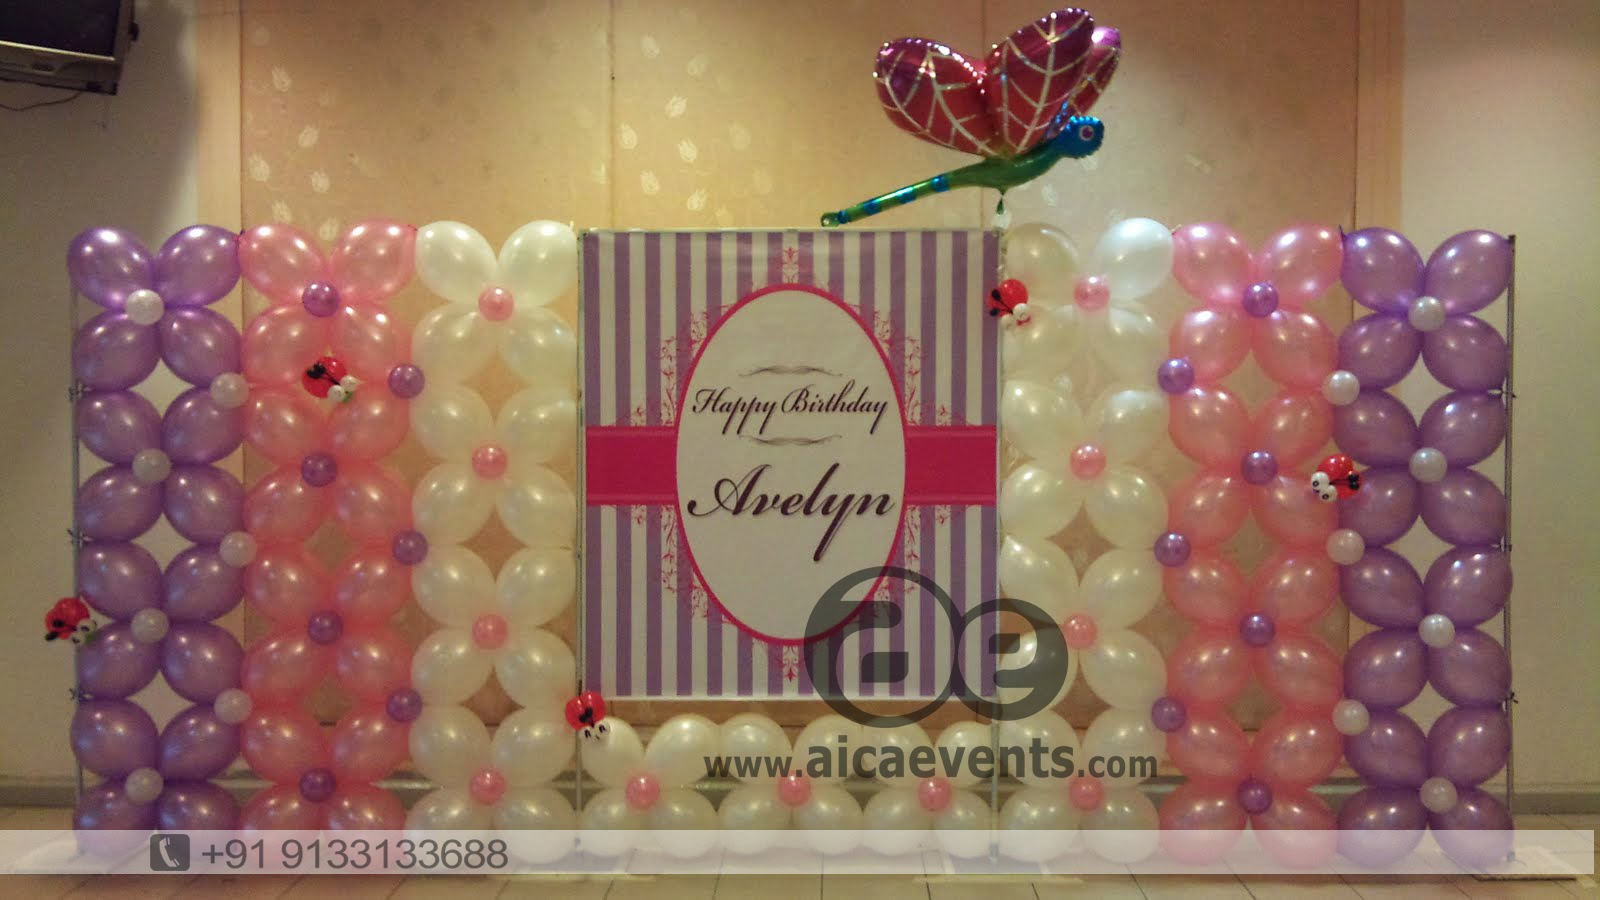 Birthday decoration for wall image inspiration of cake for Balloon decoration for birthday